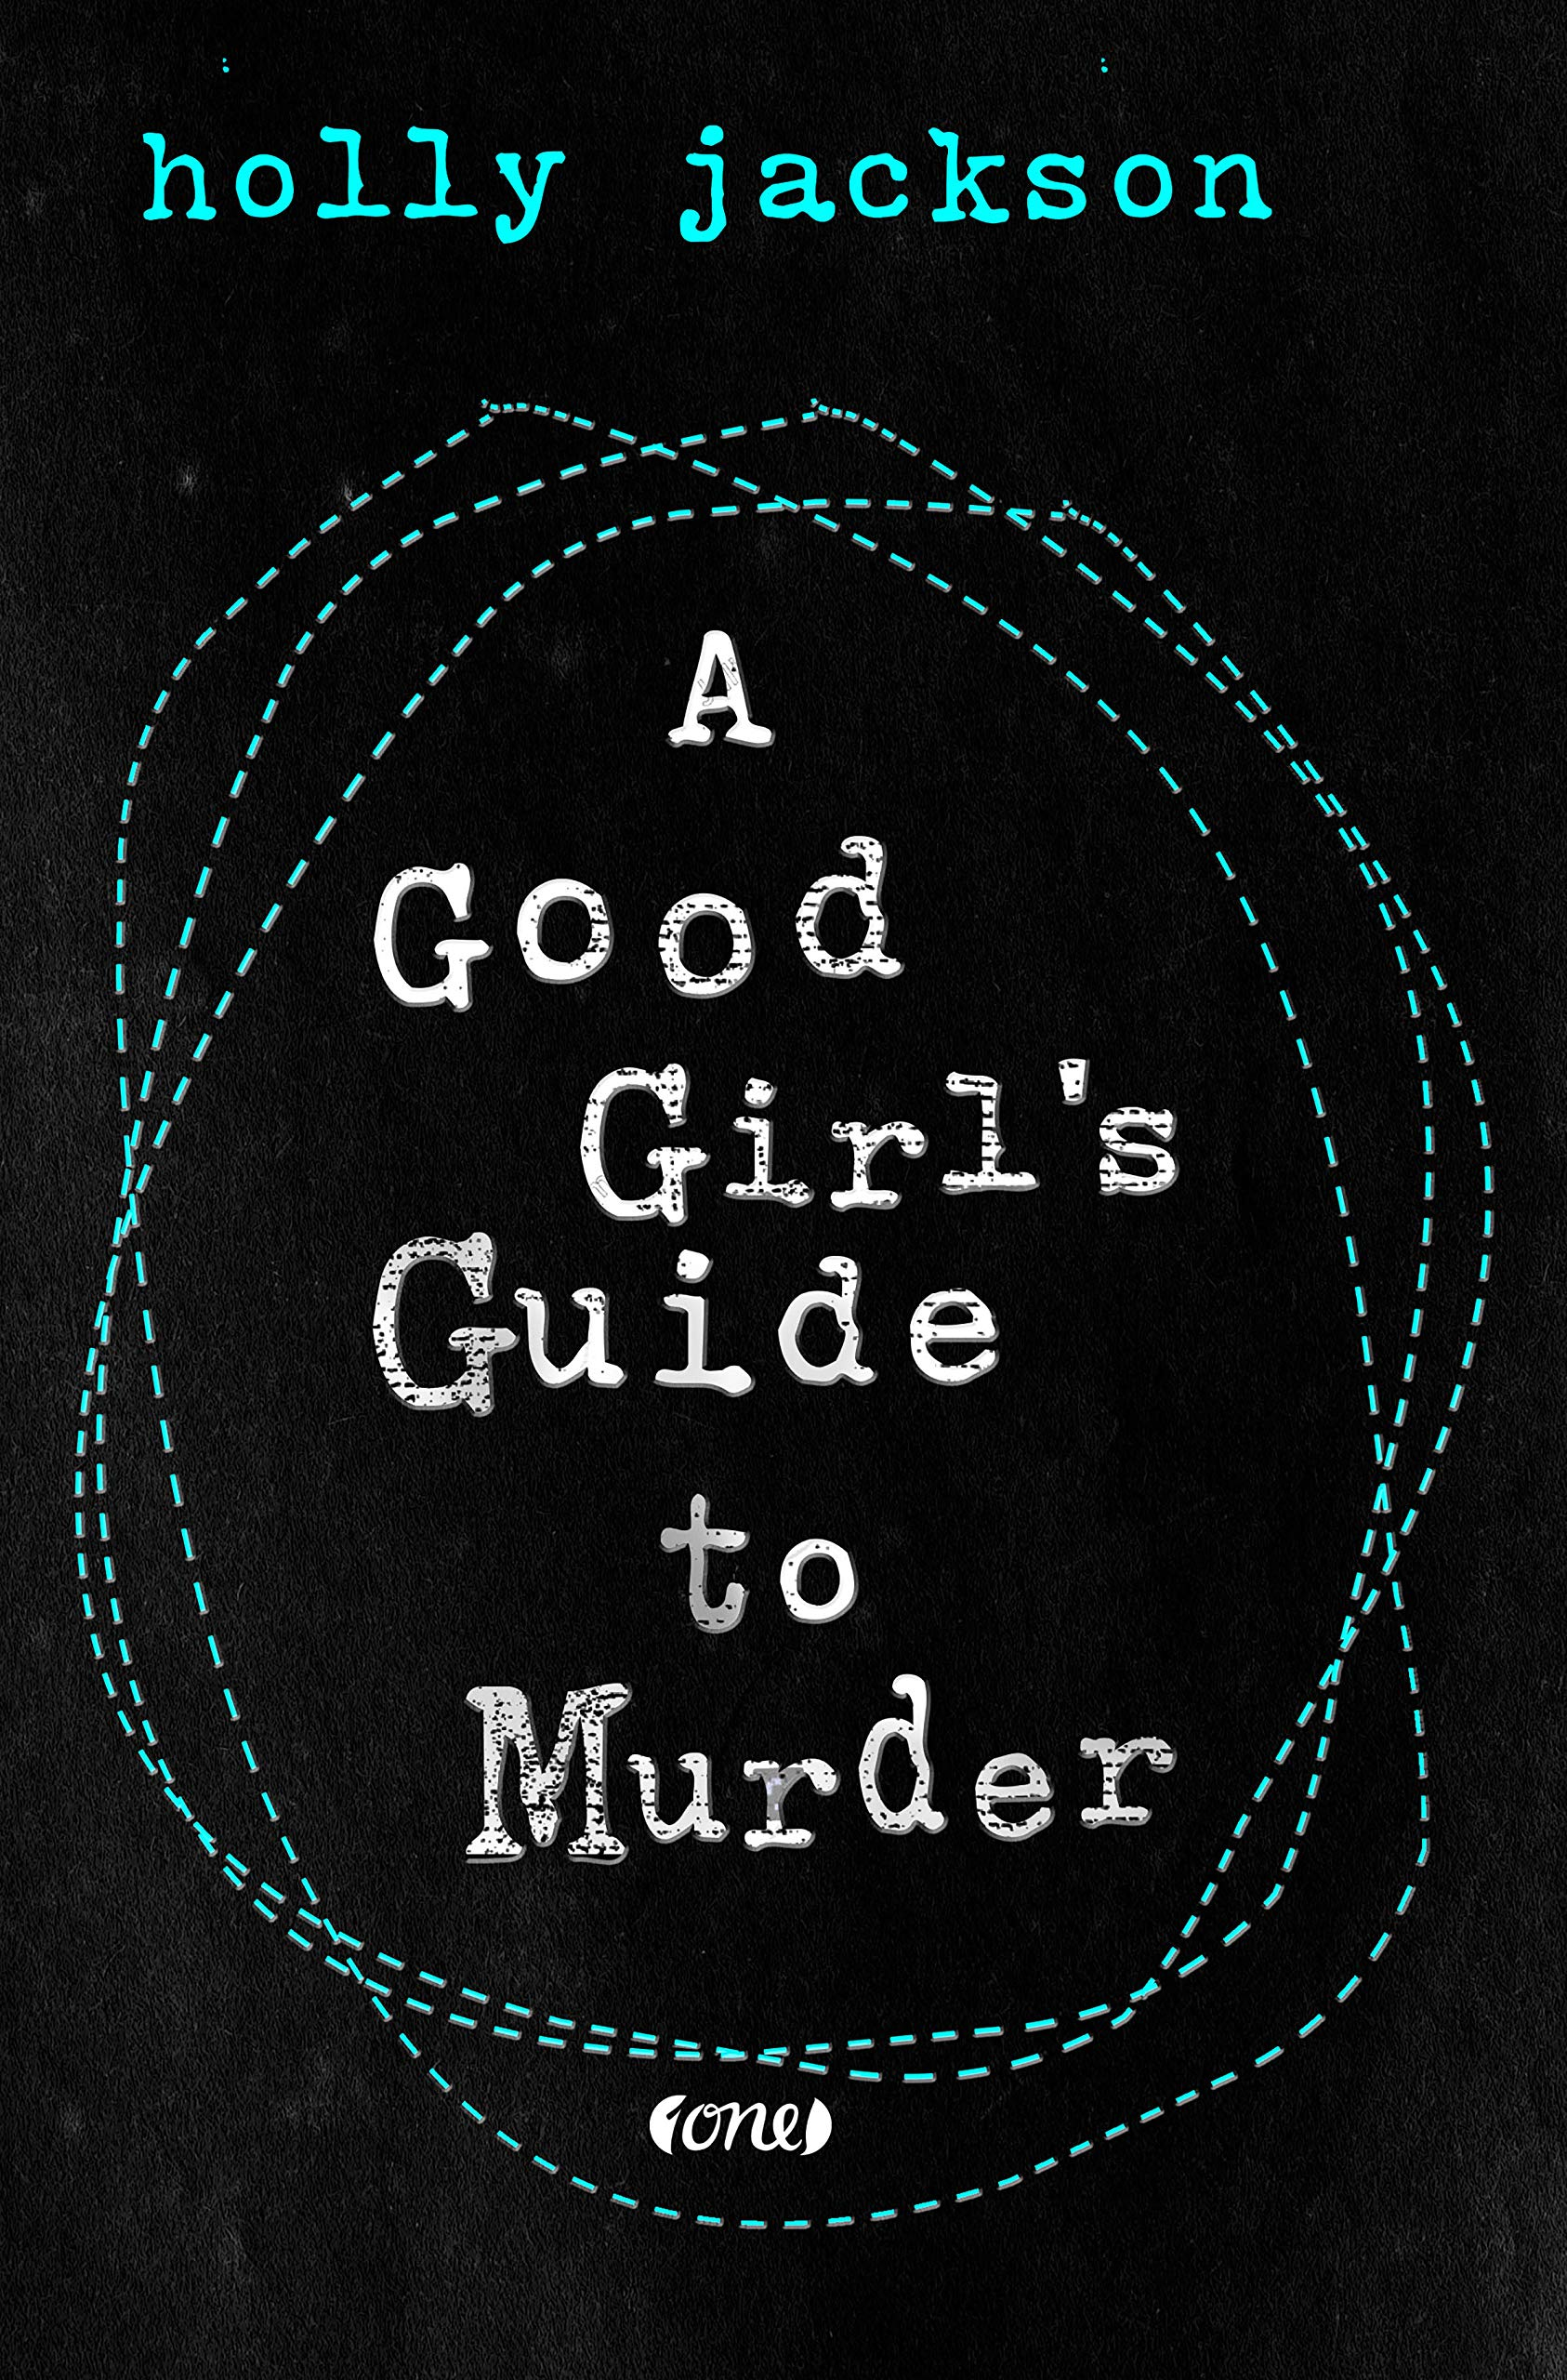 A Good Girl's Guide to Murder (German Edition) - Buy Online in Burundi. |  [missing {{category}} value] Products in Burundi - See Prices, Reviews and  Free Delivery over 128,000 FBu | Desertcart